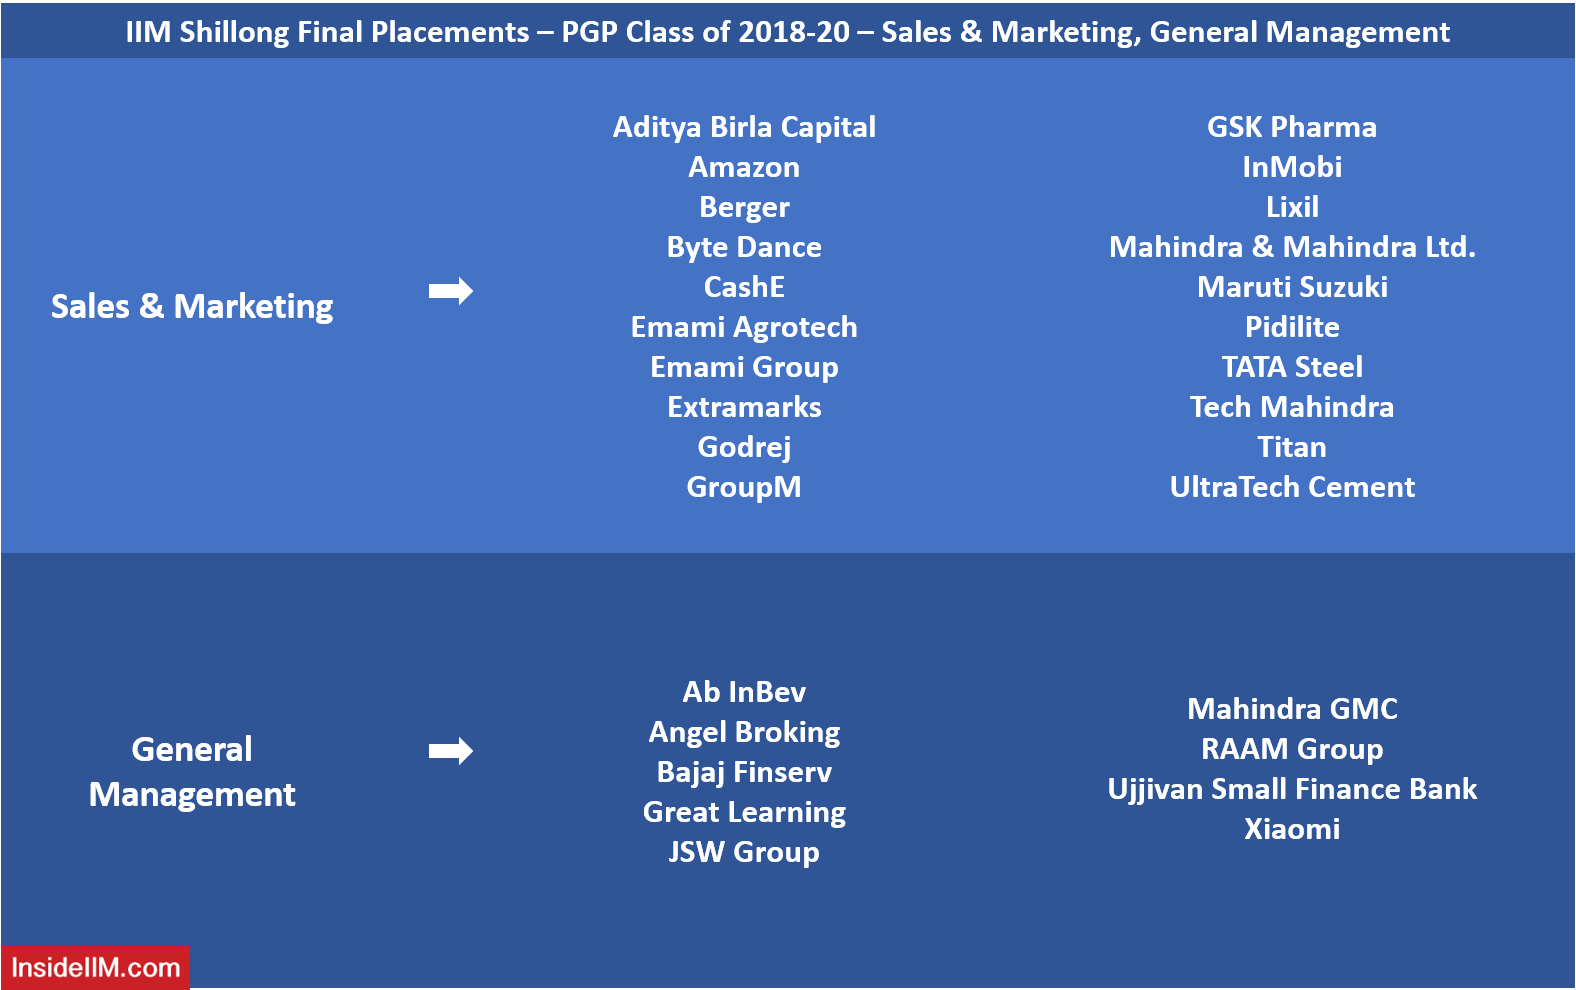 IIM Shillong Final Placements 2020 - Top Sales & Marketing, General Management Recruiters